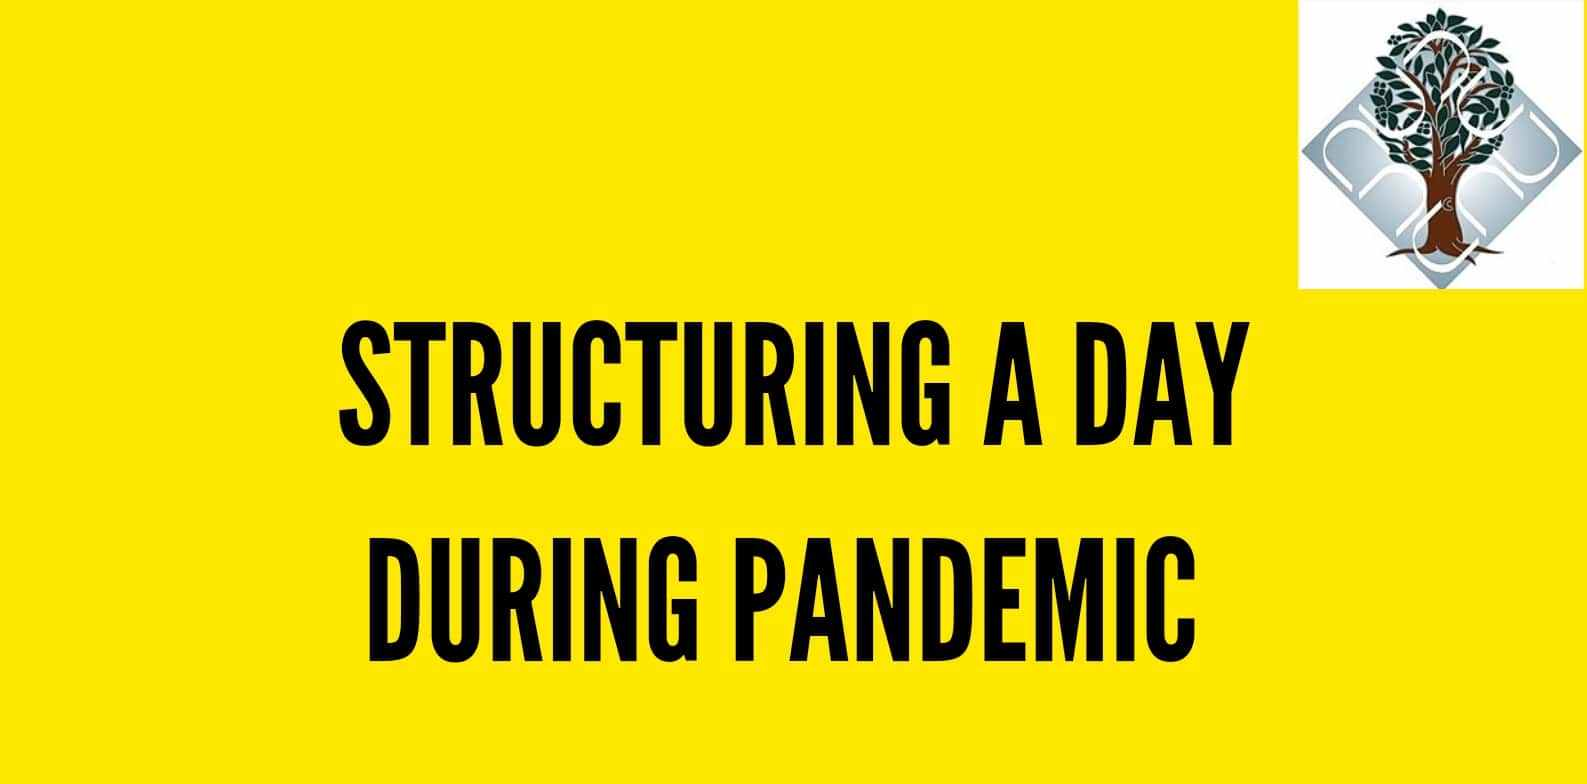 STRUCTURING A DAY DURING PANDEMIC